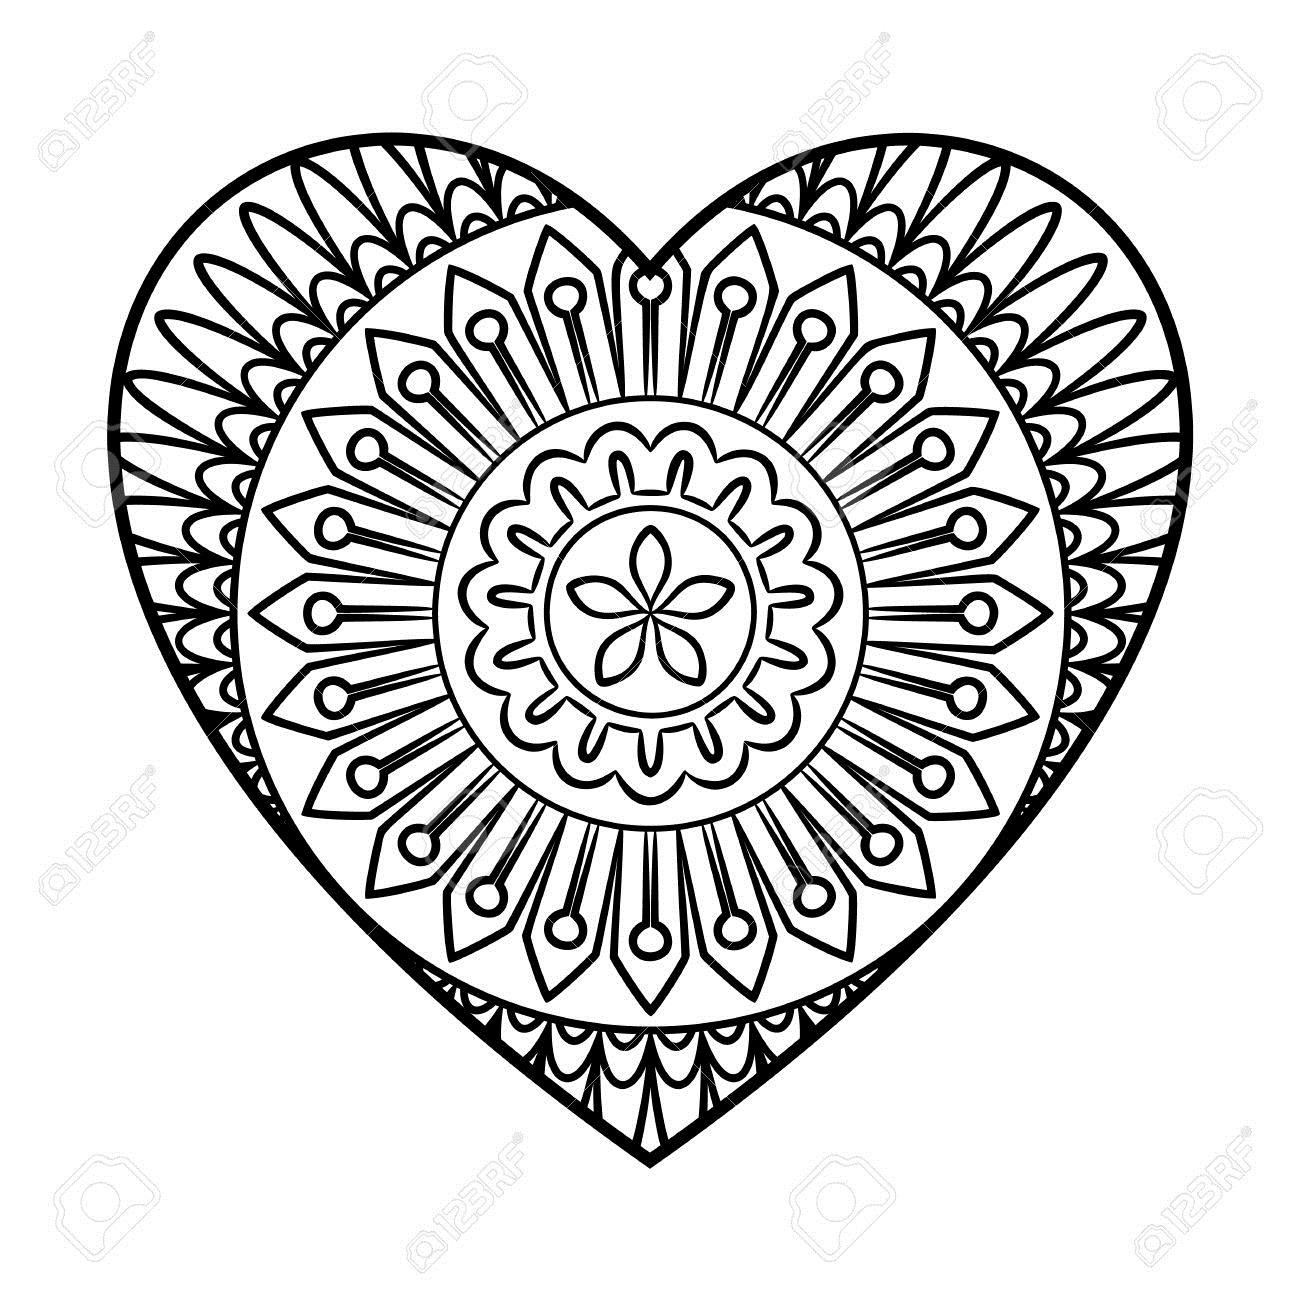 61096848-Doodle-Heart-Mandala-Coloring-Page-Outline-Floral-Design-Element-Stock-Photo